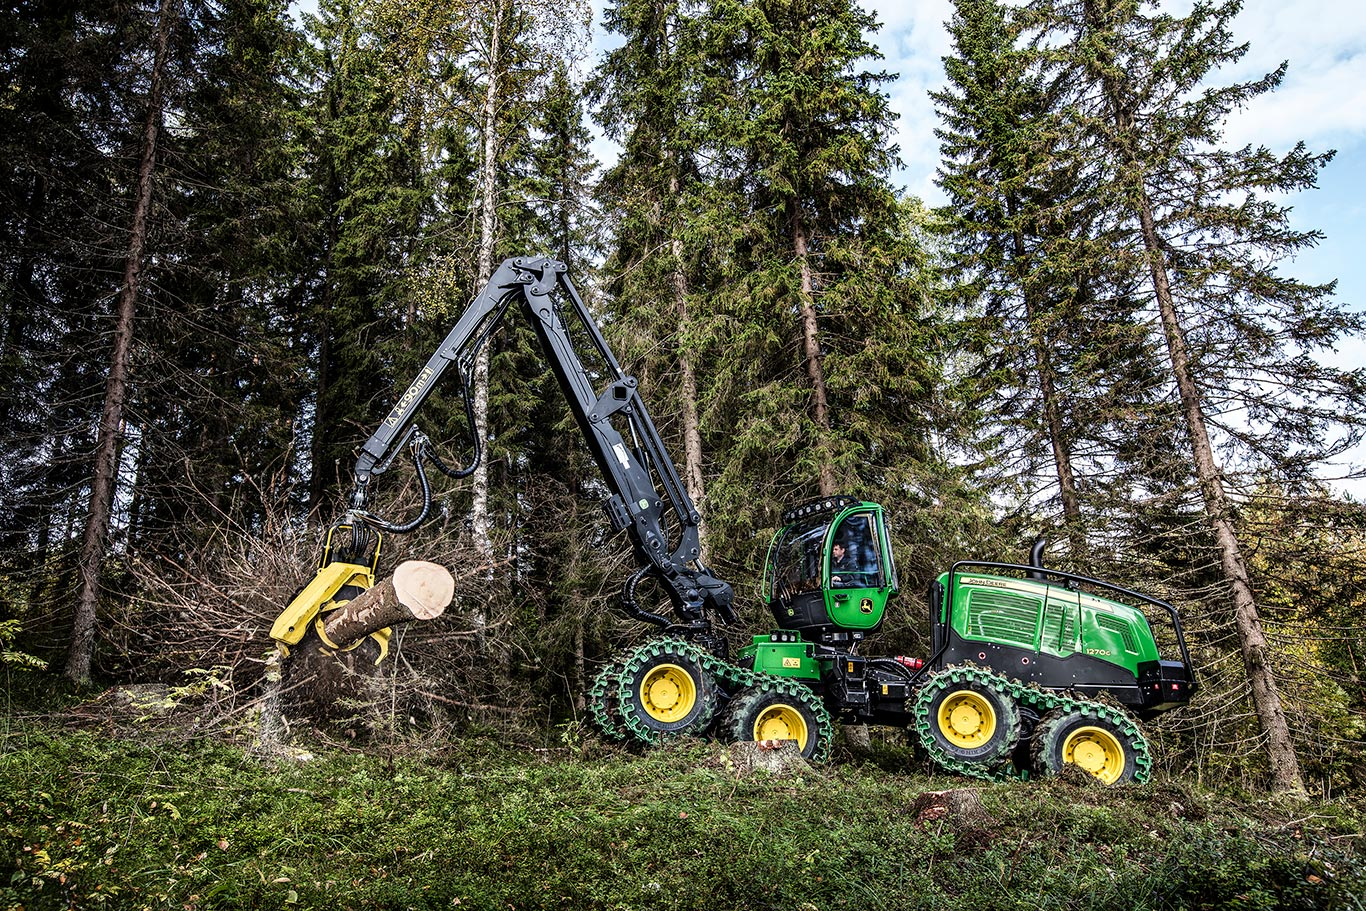 The John Deere 1270G wheeled harvester felling a tree at a jobsite.